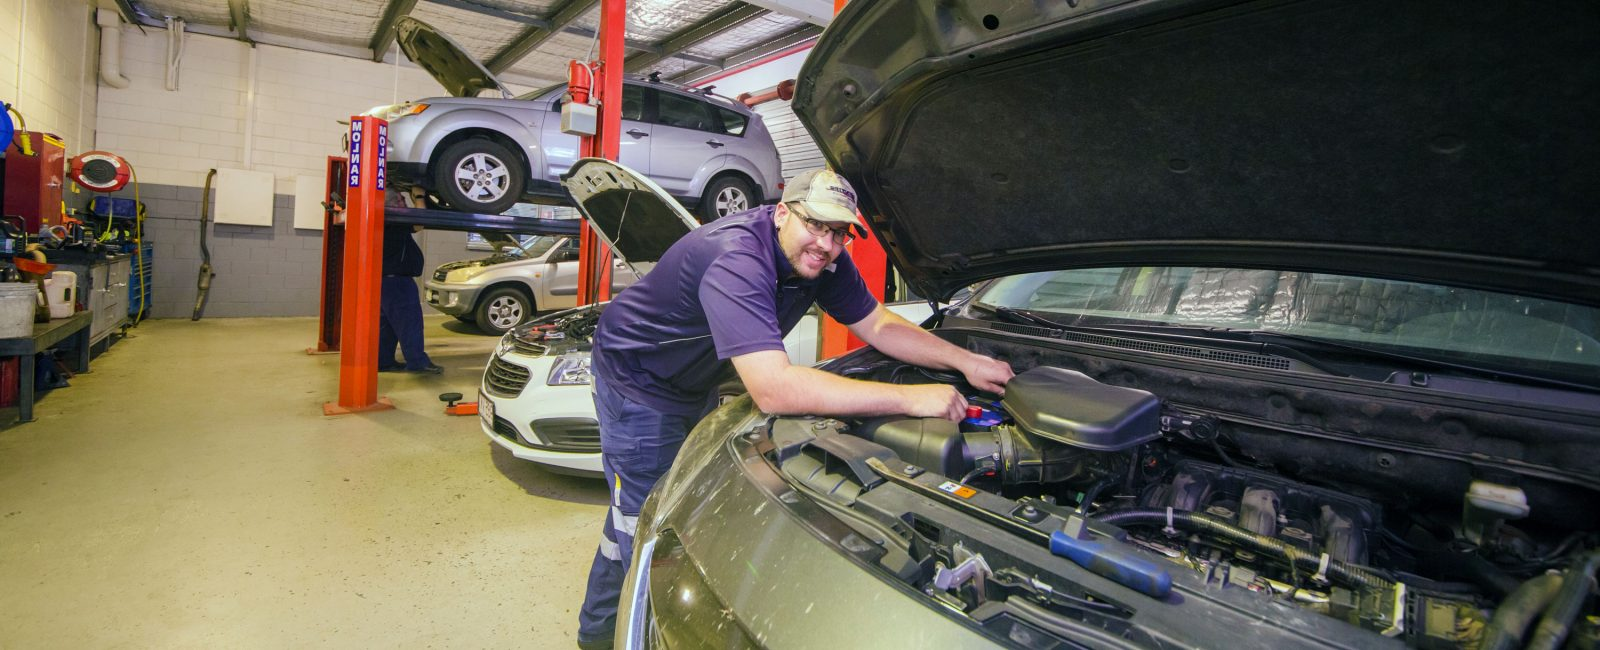 Rockhampton Mechanics